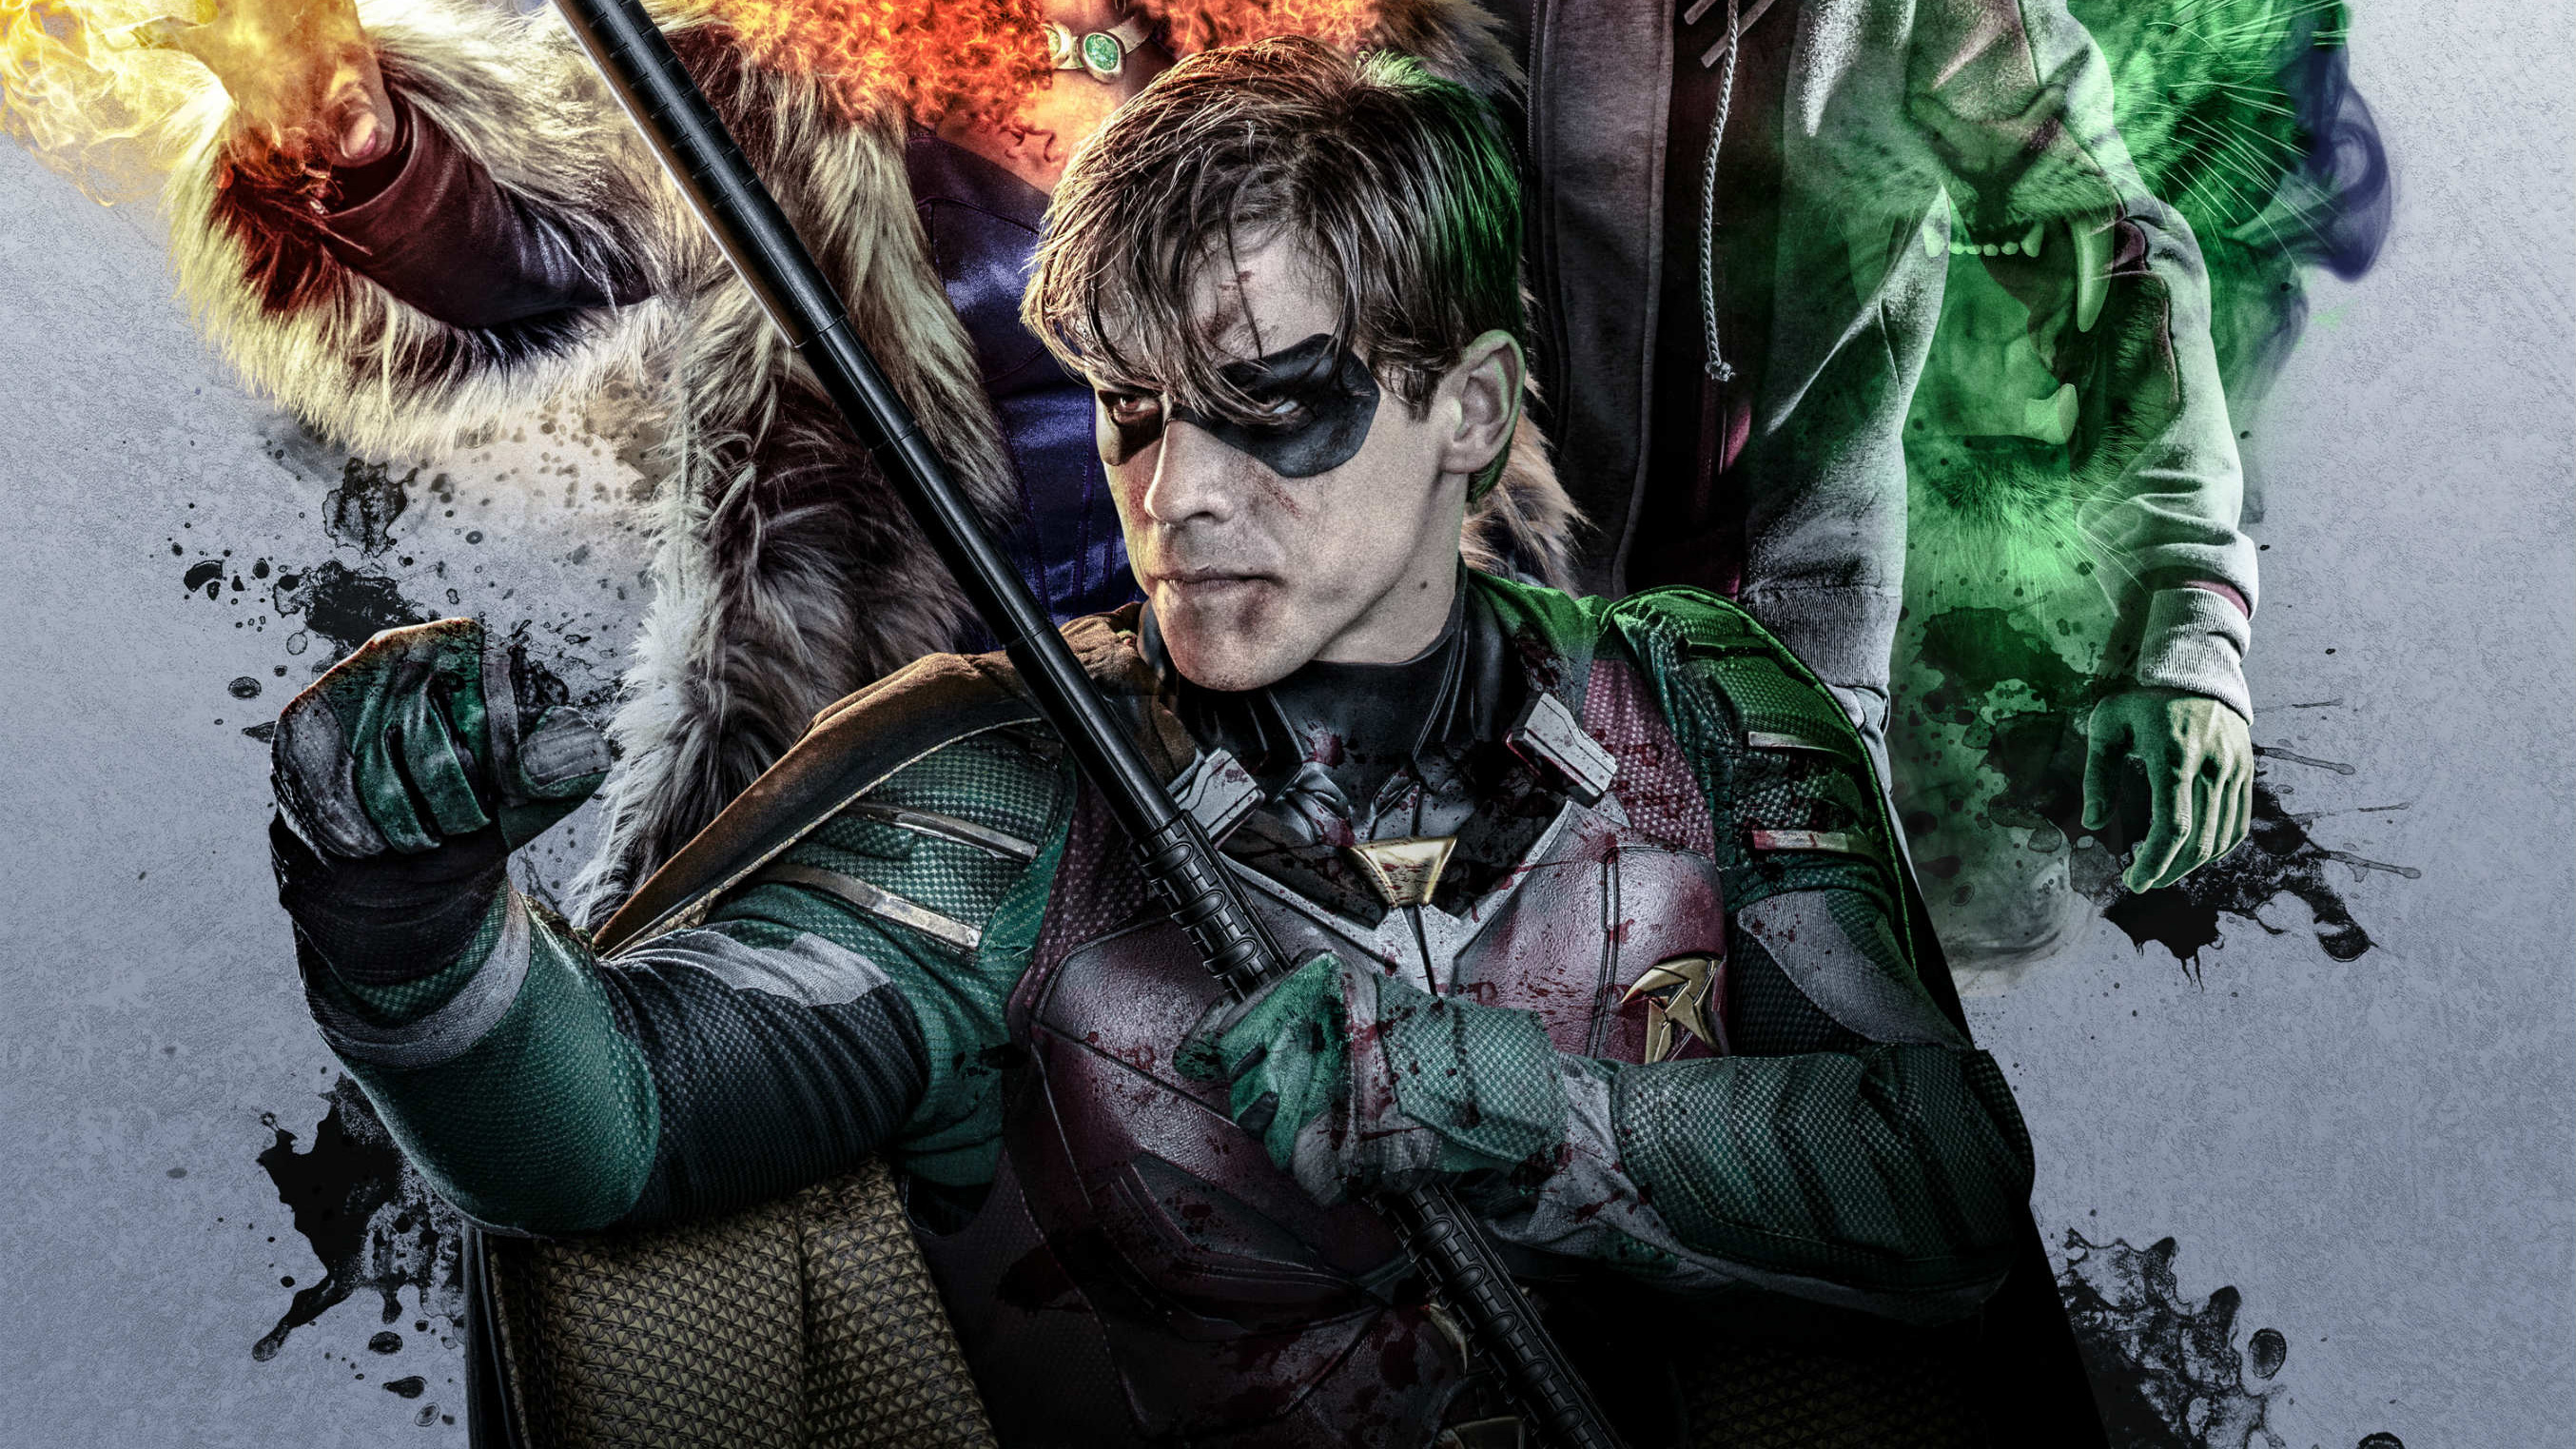 Robin in titans 2018 hd tv shows 4k wallpapers images - Tv series wallpaper 4k ...